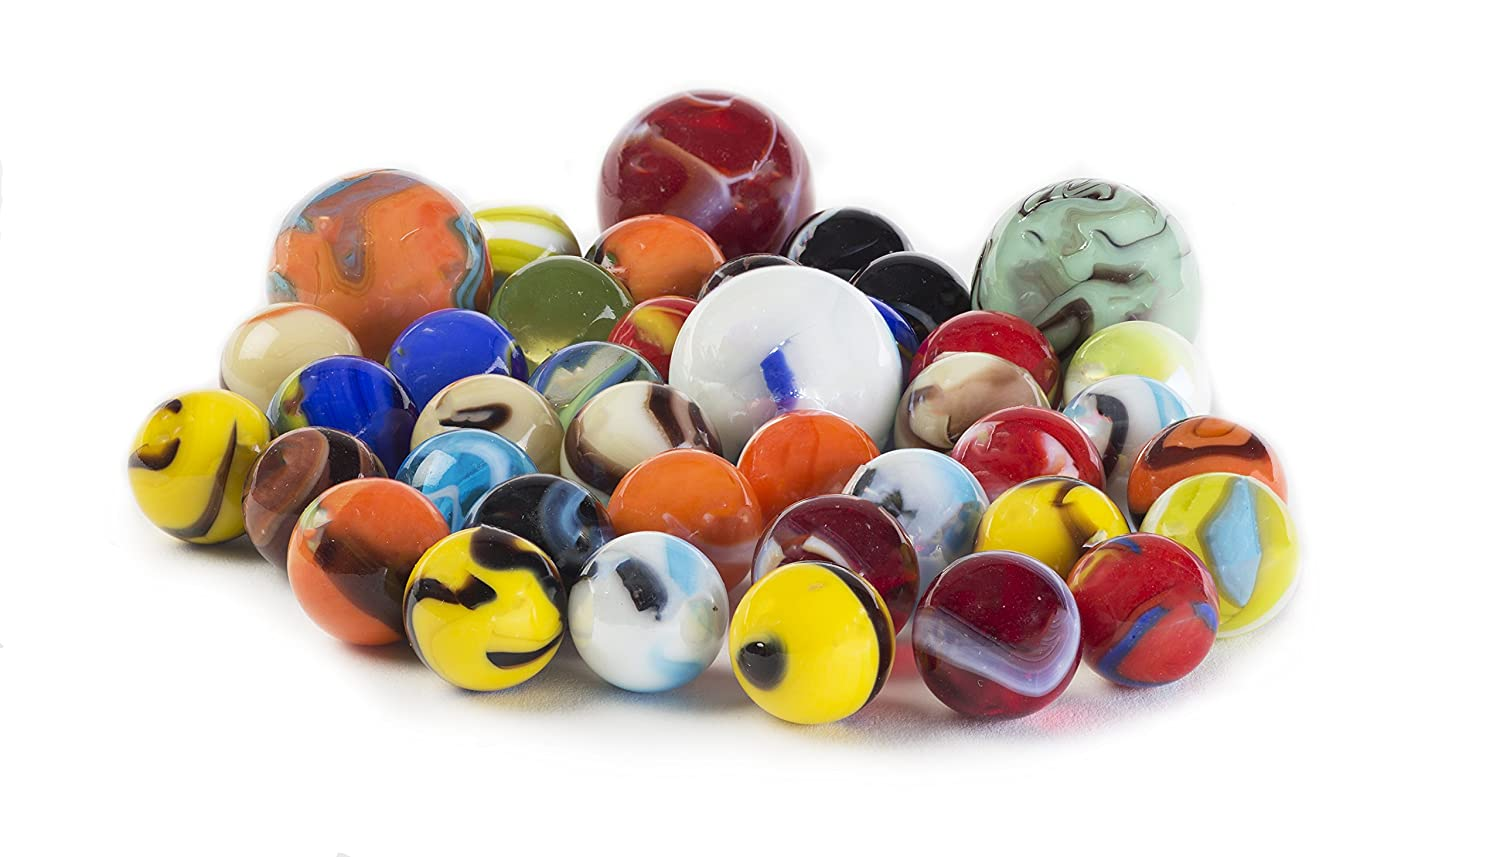 Glass Marbles Bulk Set of 40 36 Players and 4 Shooters Assorted Colors with Game Marbles Rules.